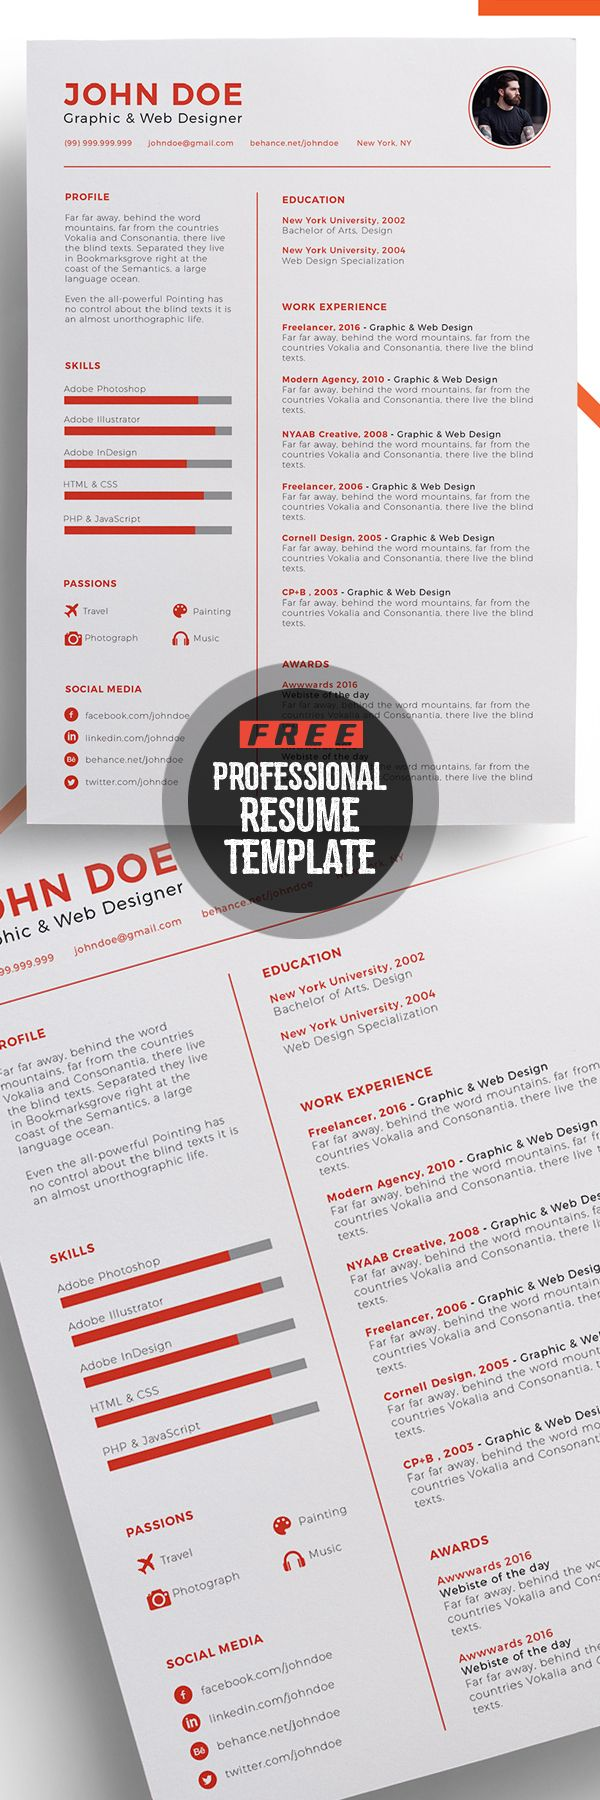 Professional Free Resume Template Design | Resume templates ...